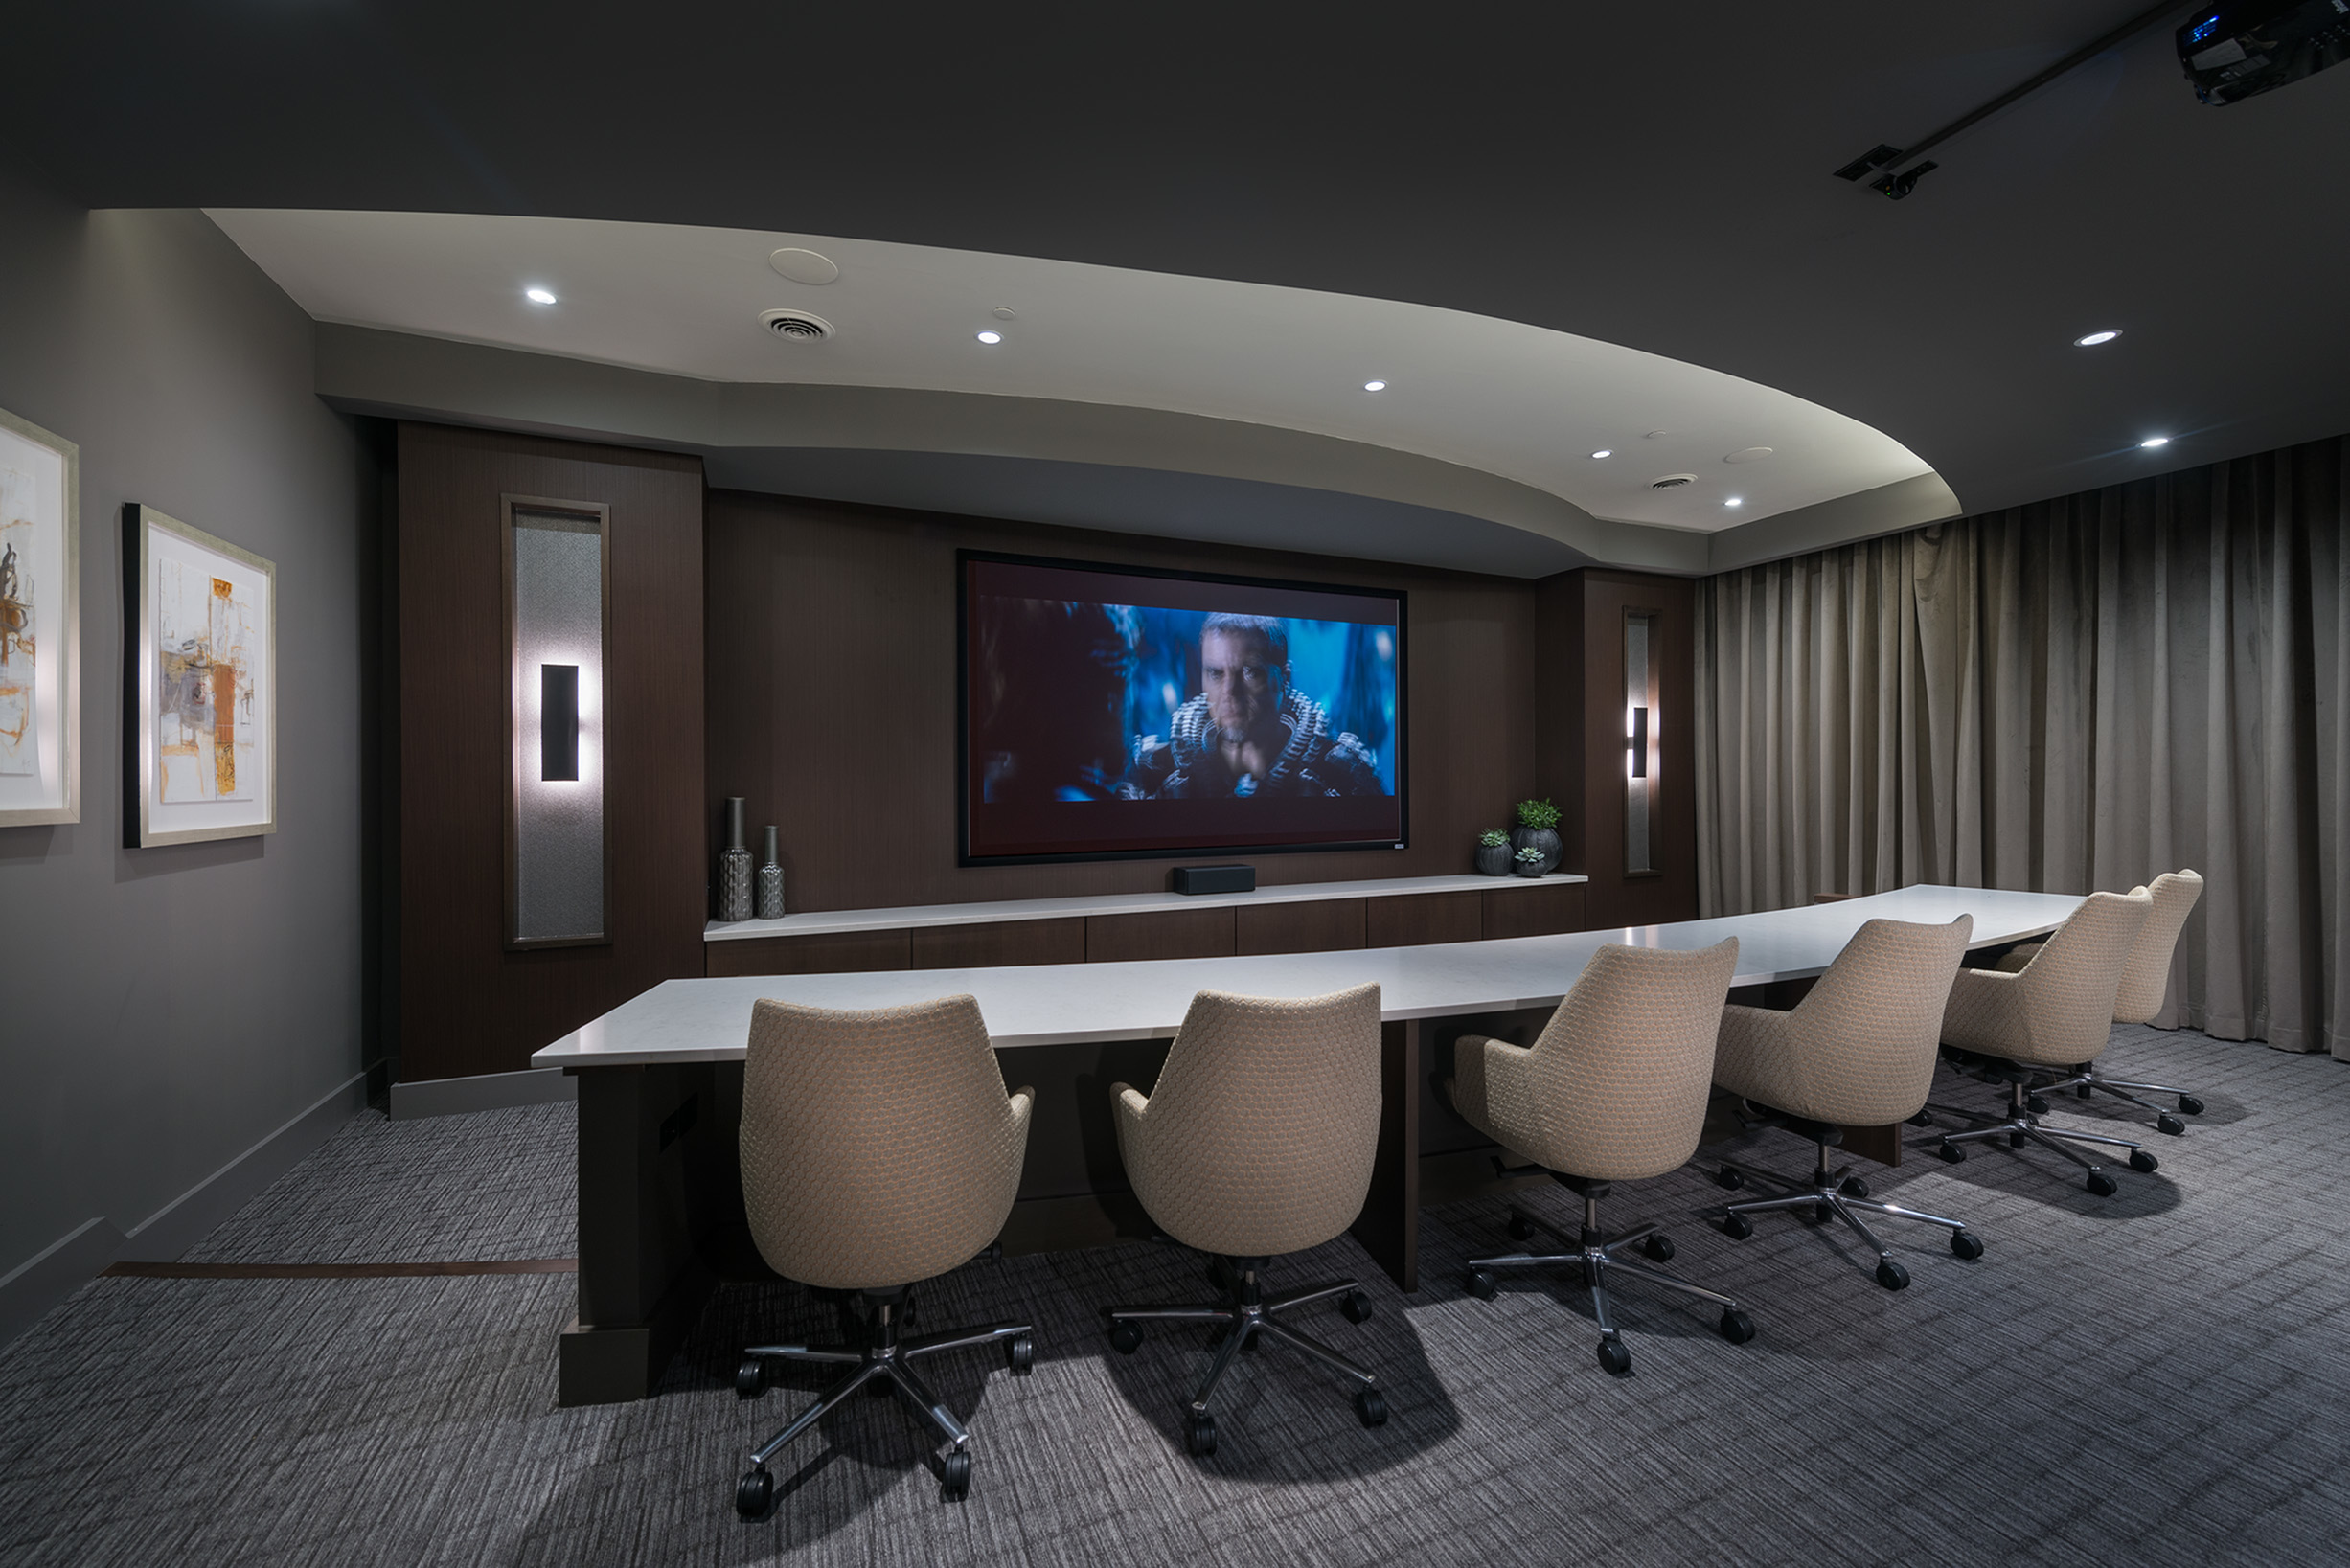 Media Room with Cinema-Style Seating